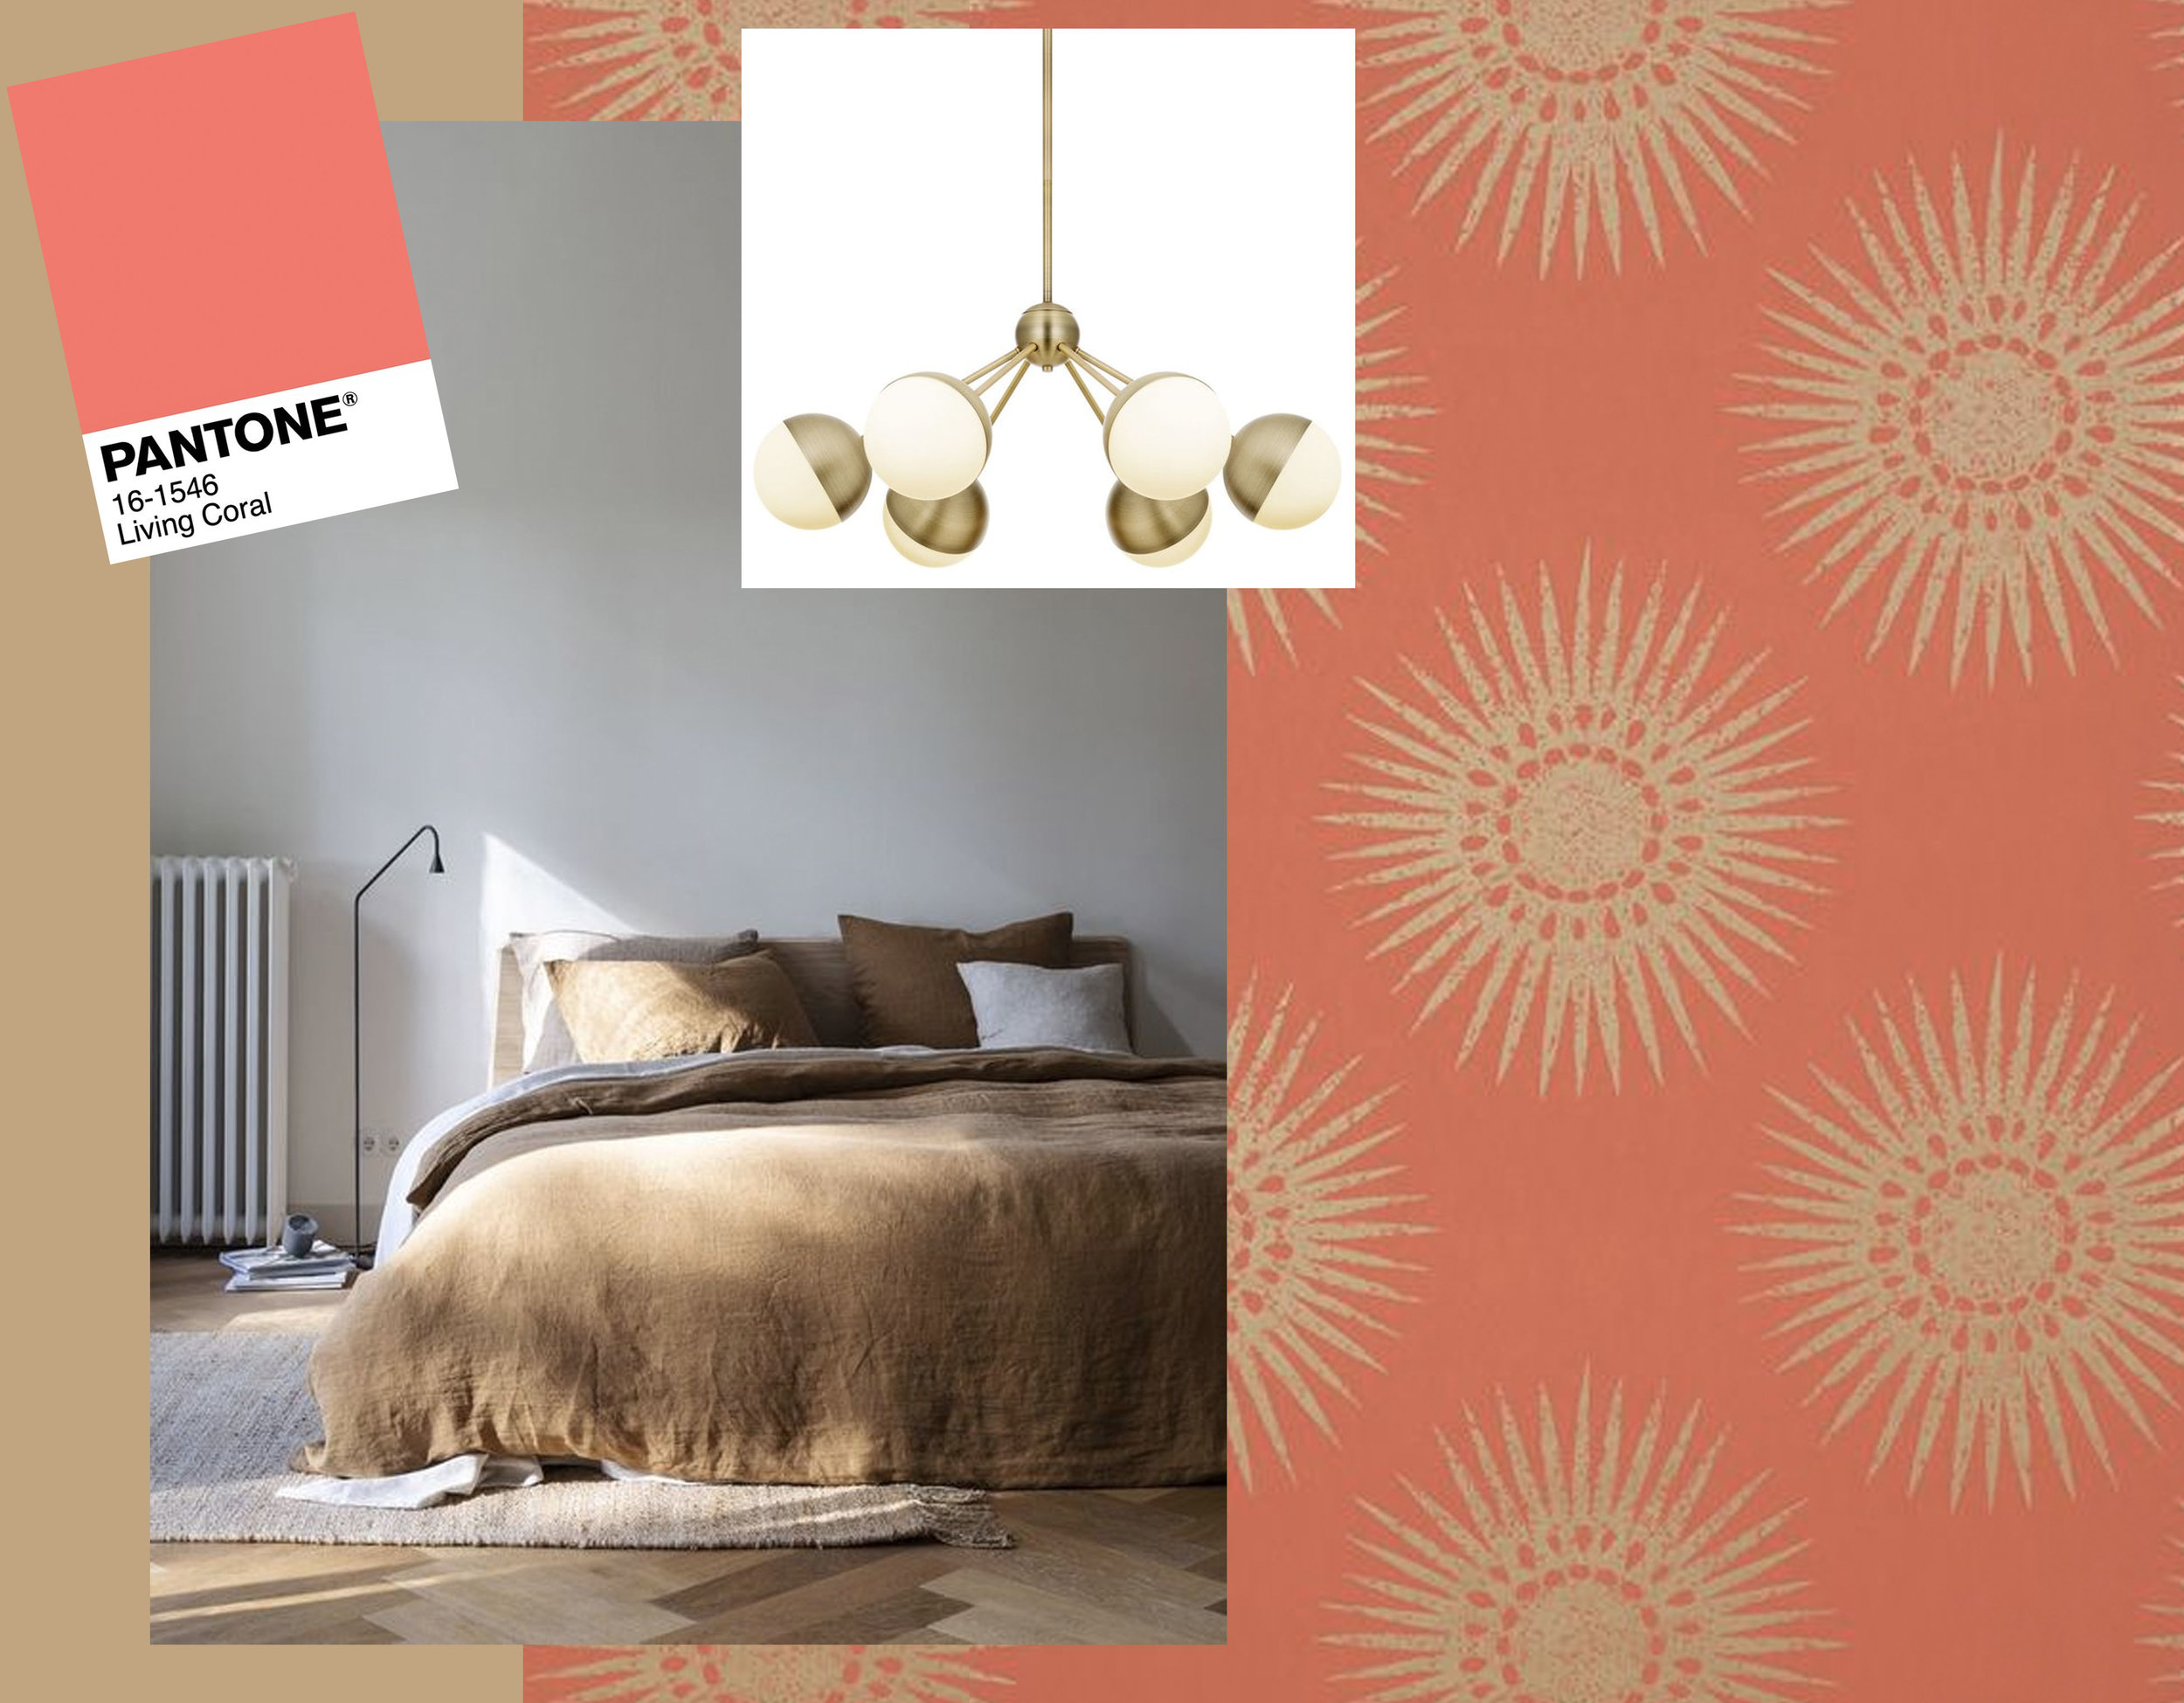 How To Decorate With Living Coral Pantone S Color Of The Year